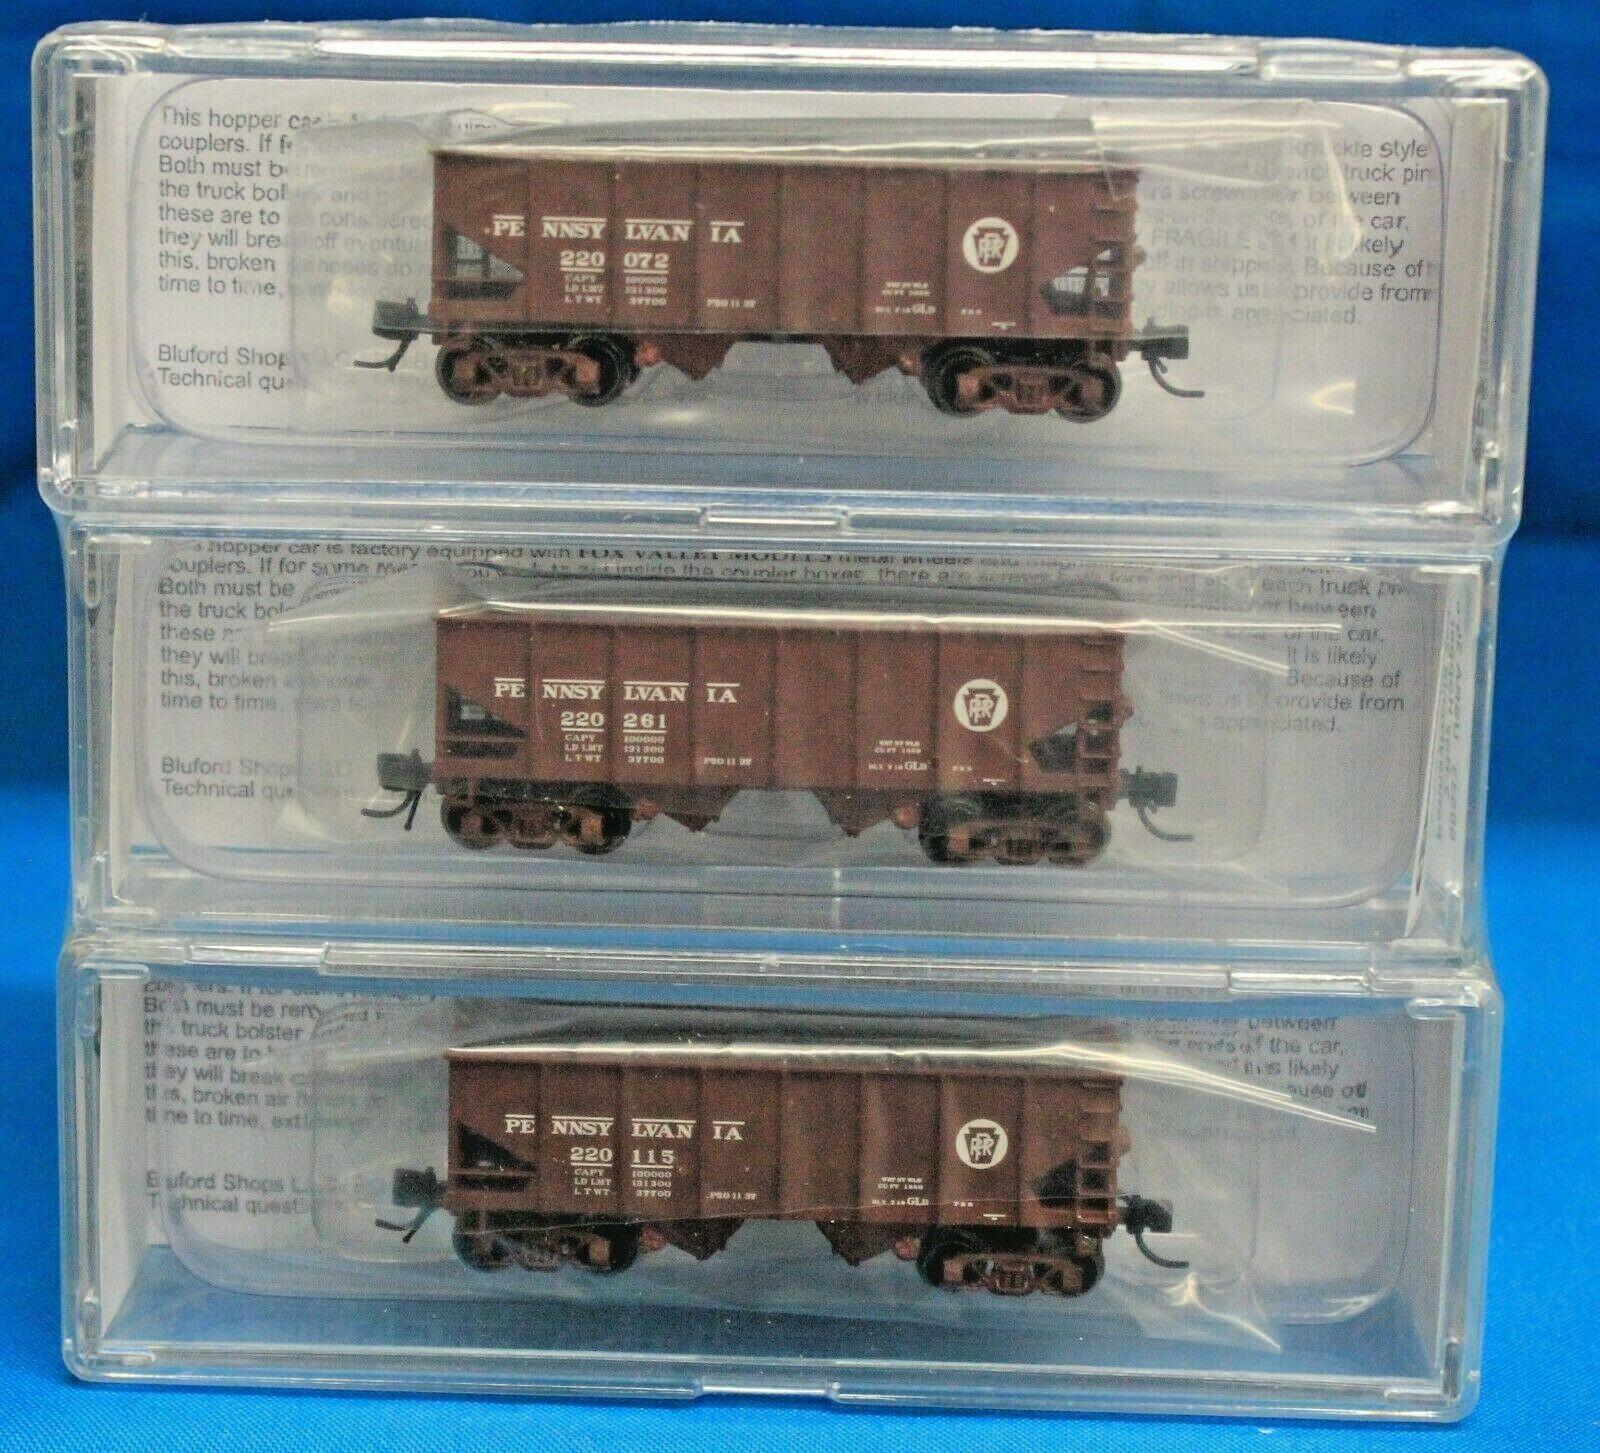 SCALA Nbluford negozi 60533 PENNSYLVANIA RR 30' 6 2Bay Open TRAMOGGE 3Pack